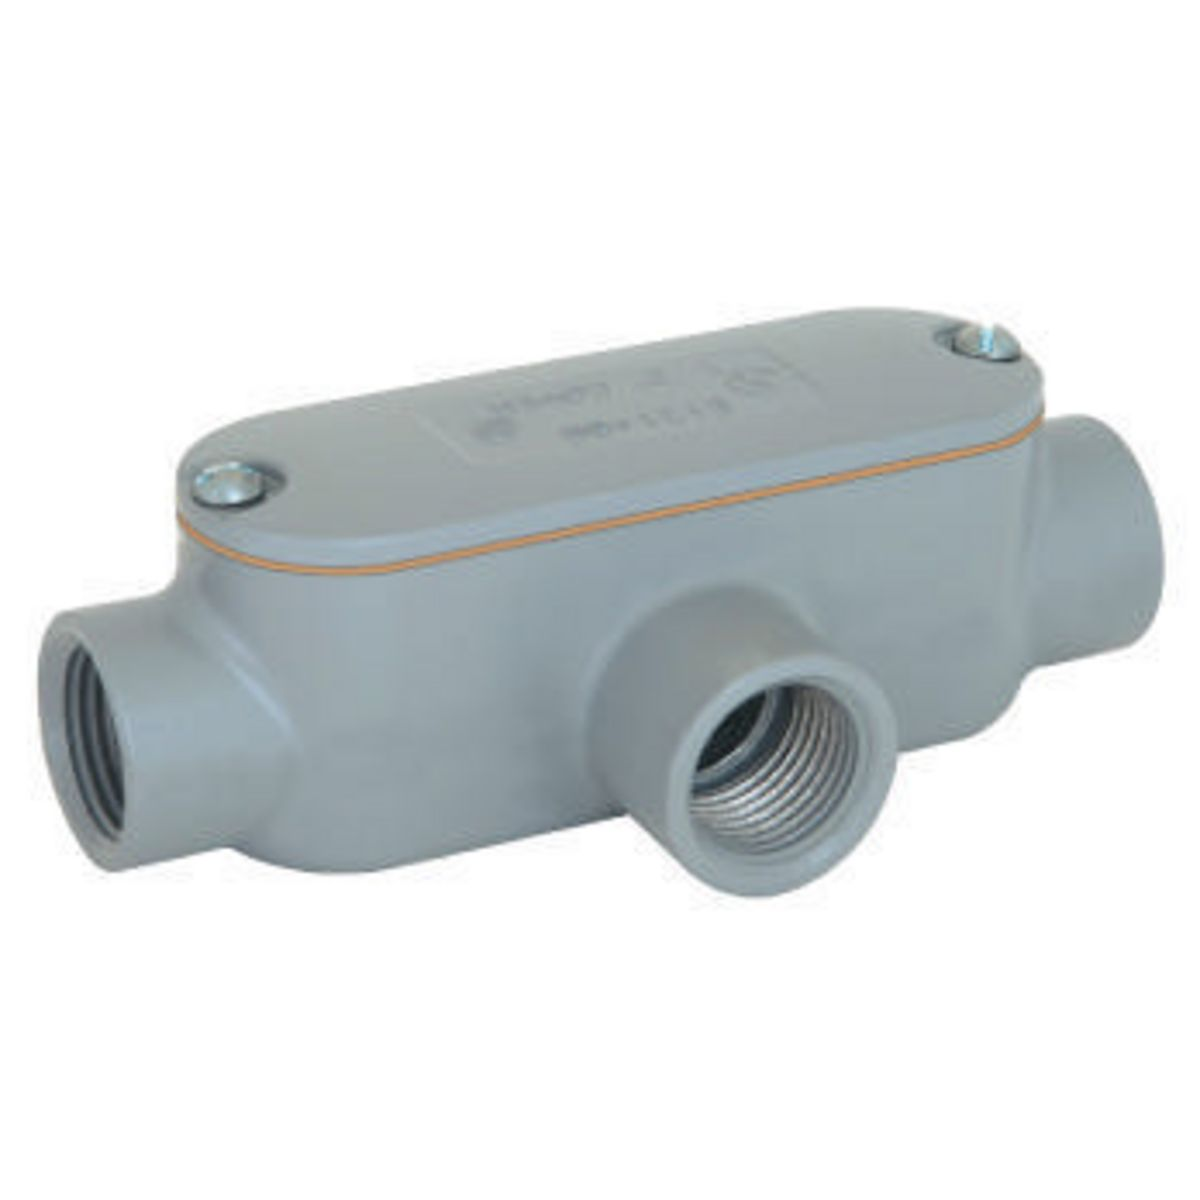 """KIL EAT-1CGN 1/2"""" inch T threaded conduit body, gasket & cover"""